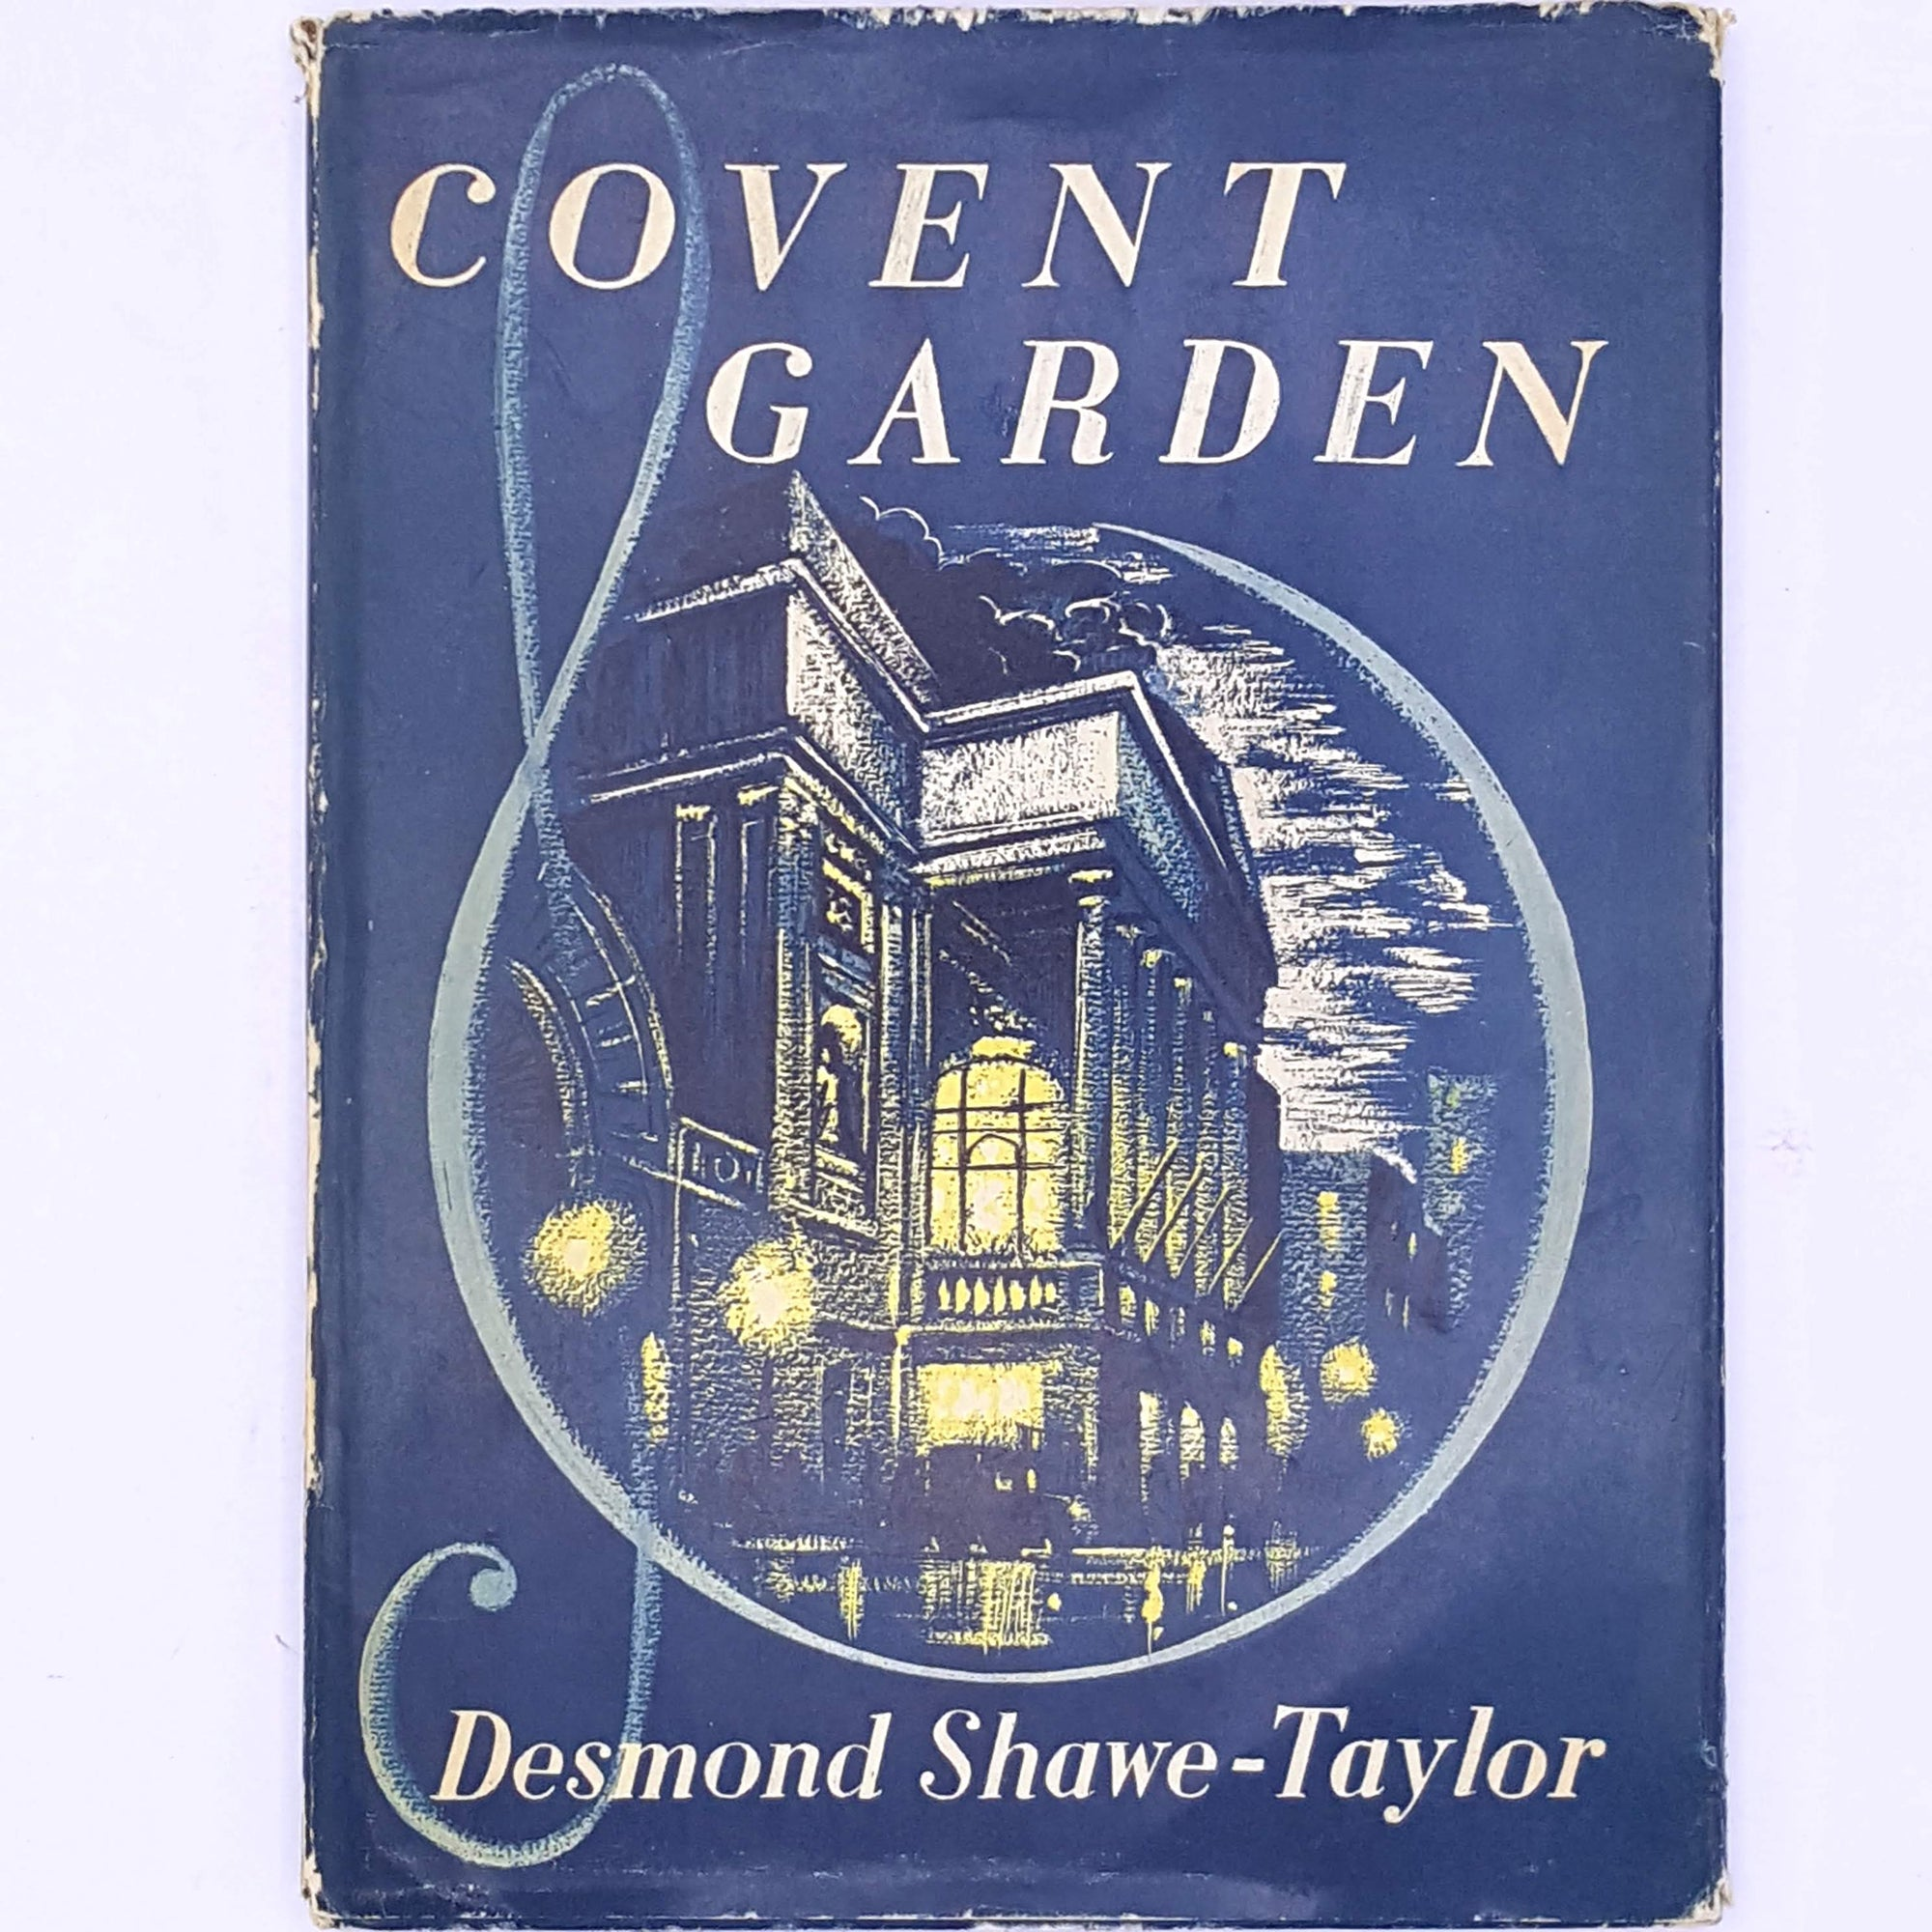 Covent Gardens by Desmond Shawe-Taylor